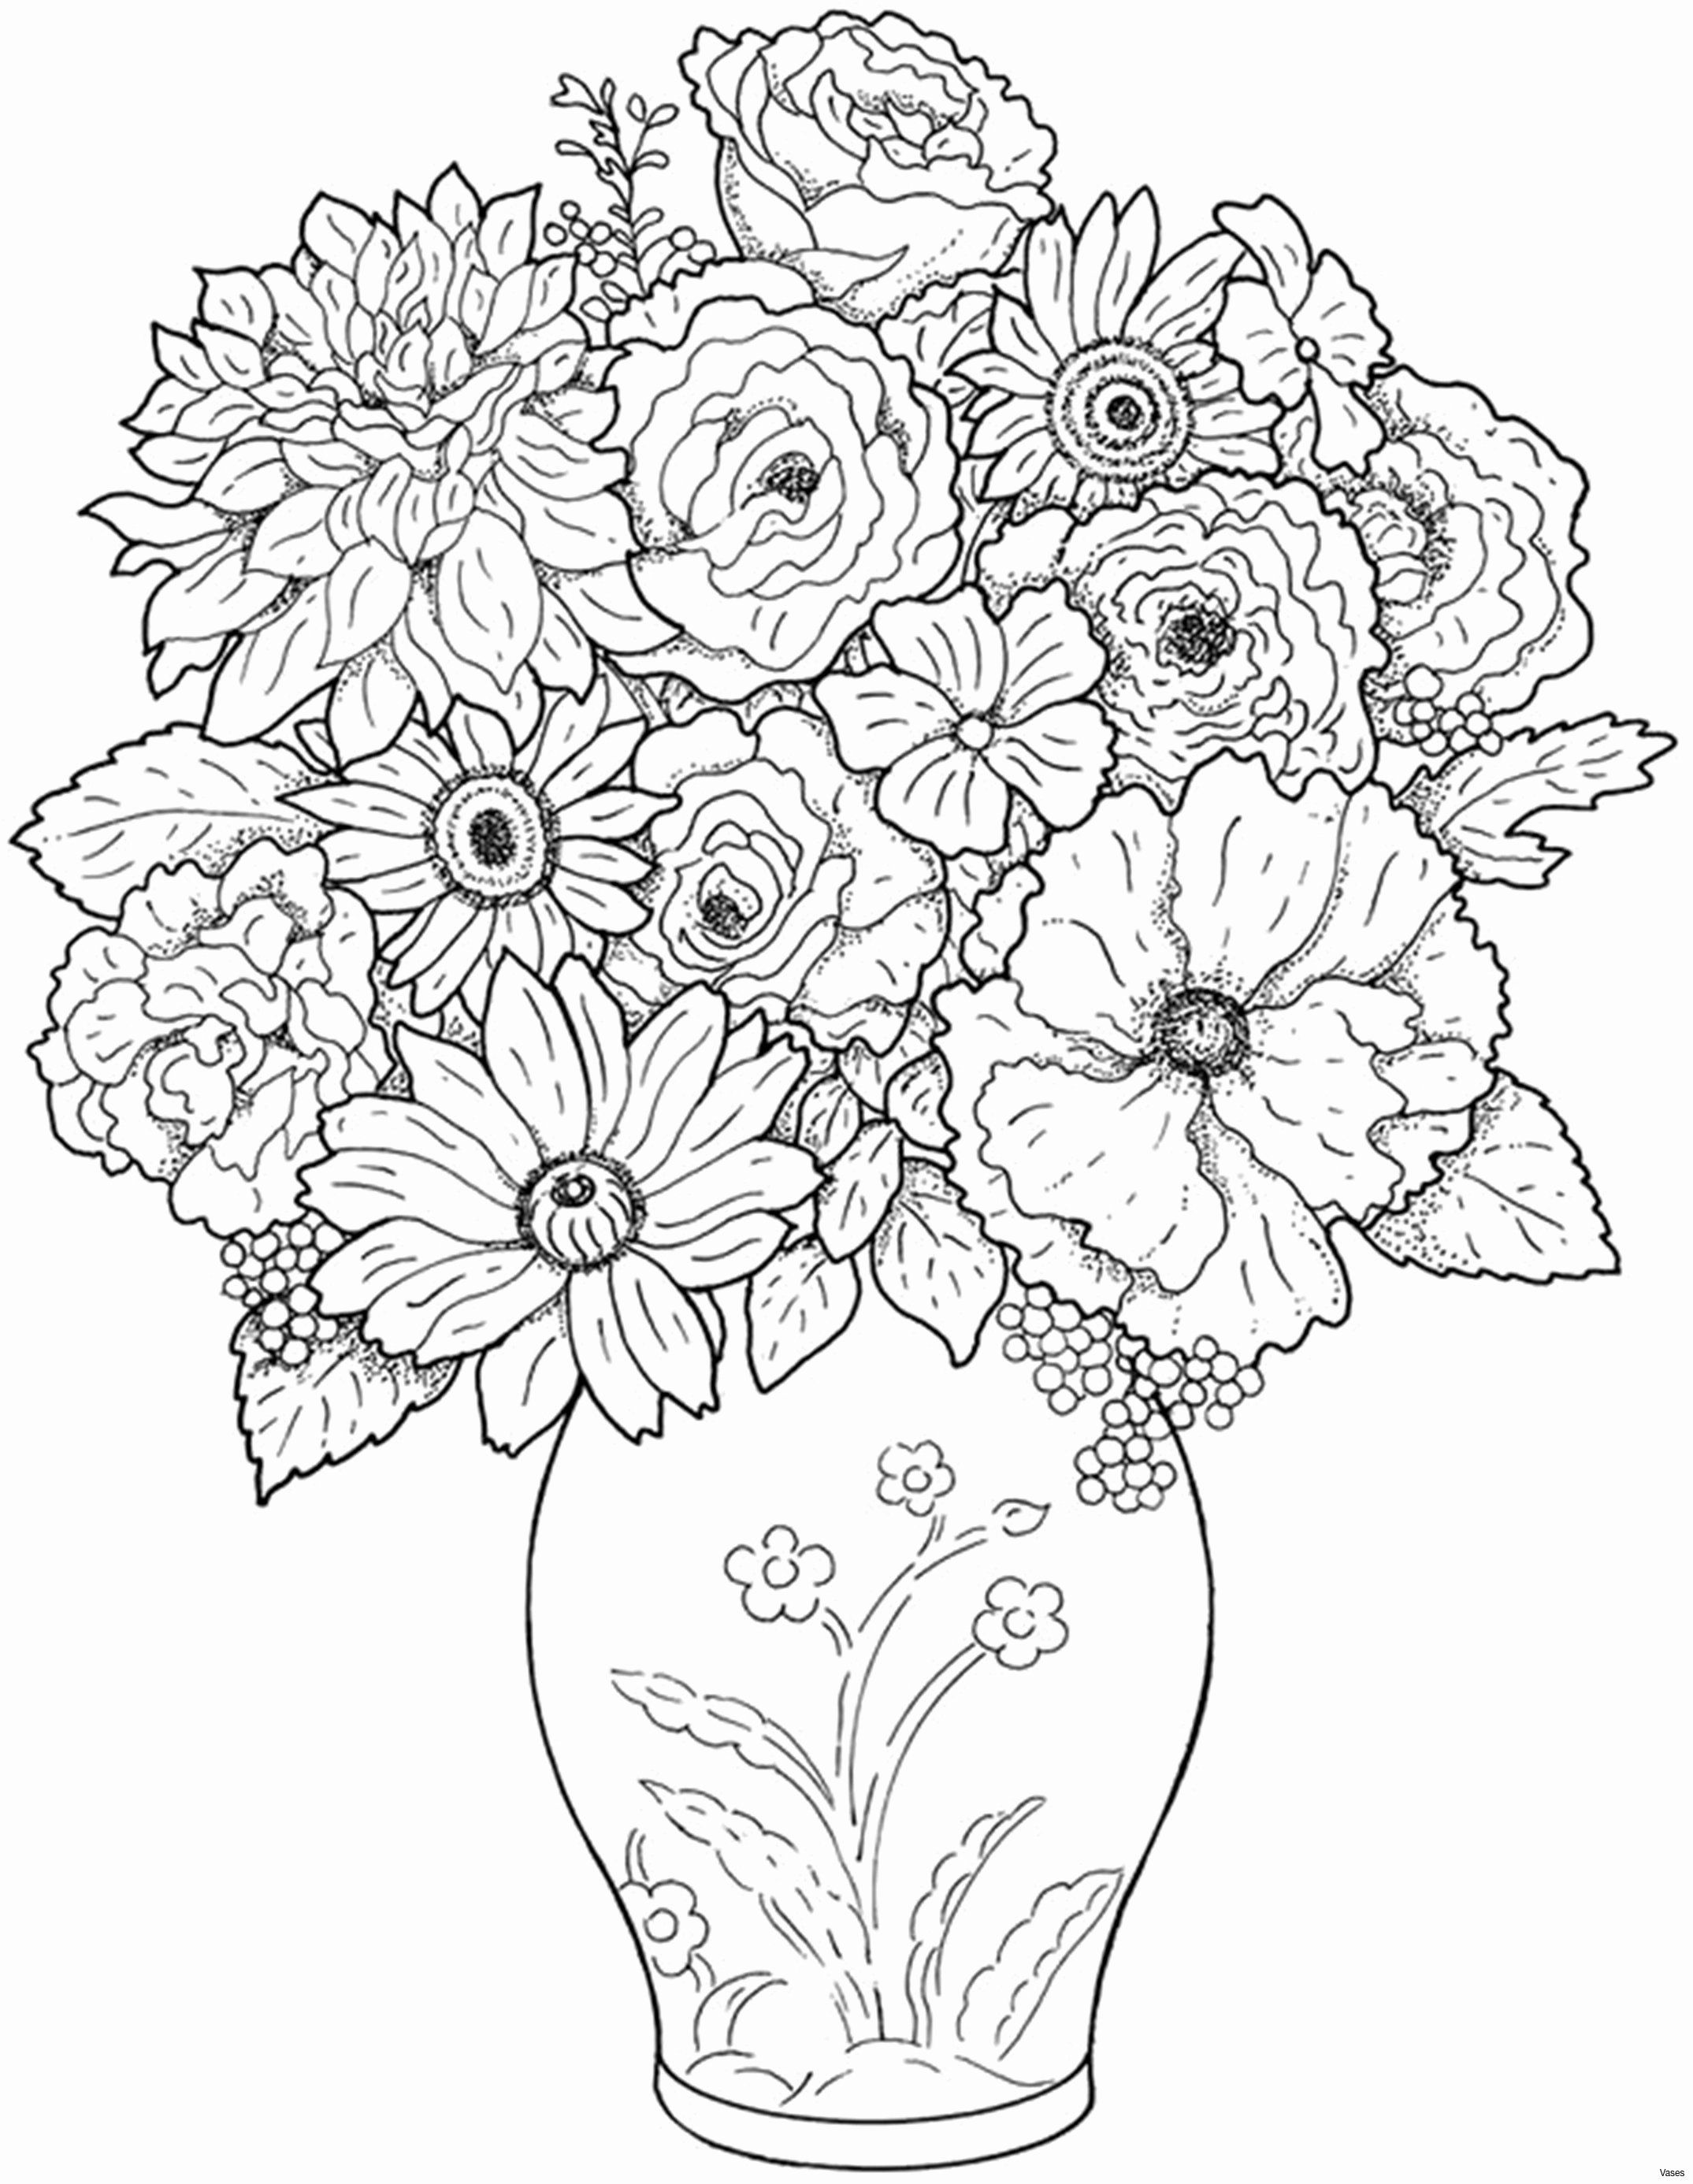 Coloring Cartoon Flowers Elegant 24 Fashionable Flower Vase Artificial Printable Flower Coloring Pages Detailed Coloring Pages Butterfly Coloring Page